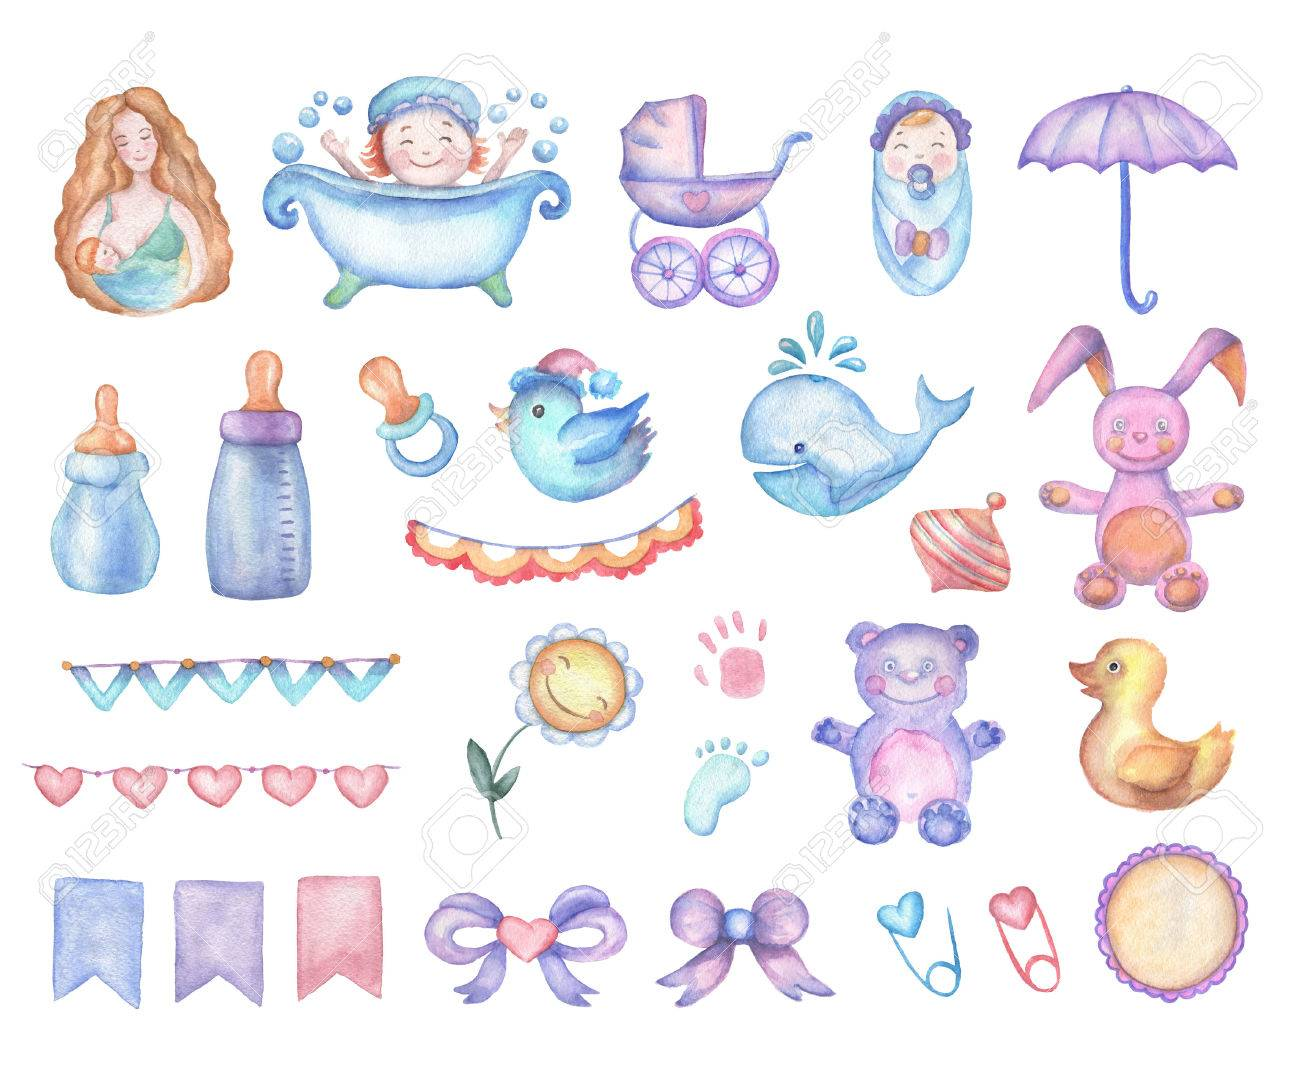 Watercolor baby shower set of design elements in high resolution. - 50154422